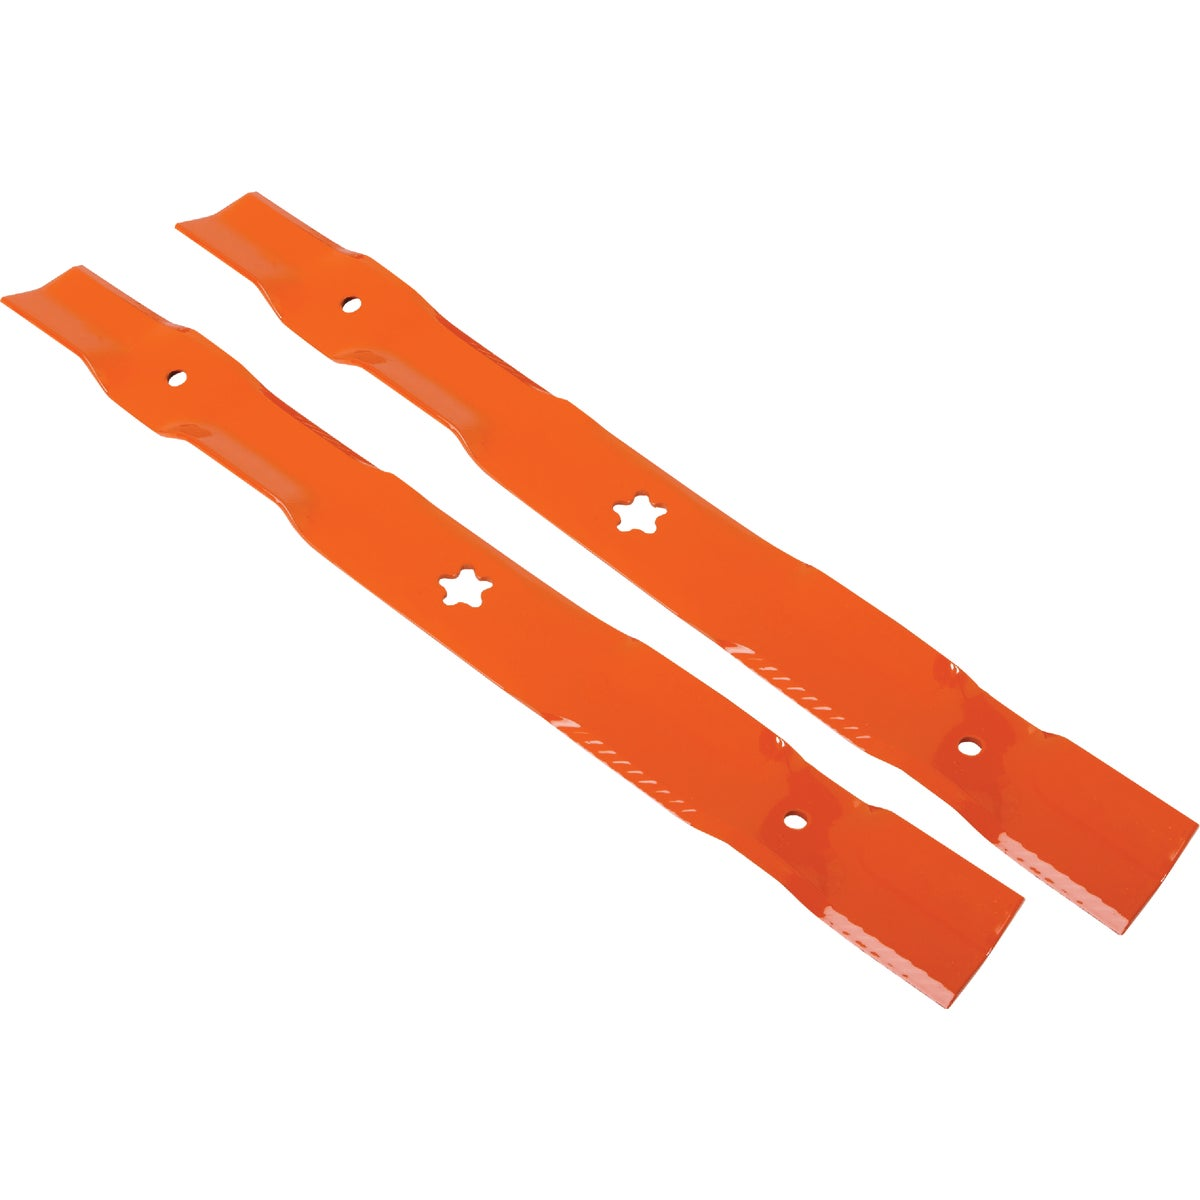 "46"" TRACTOR BLADE SET - 531309715 by Husqvarna Outdoor"